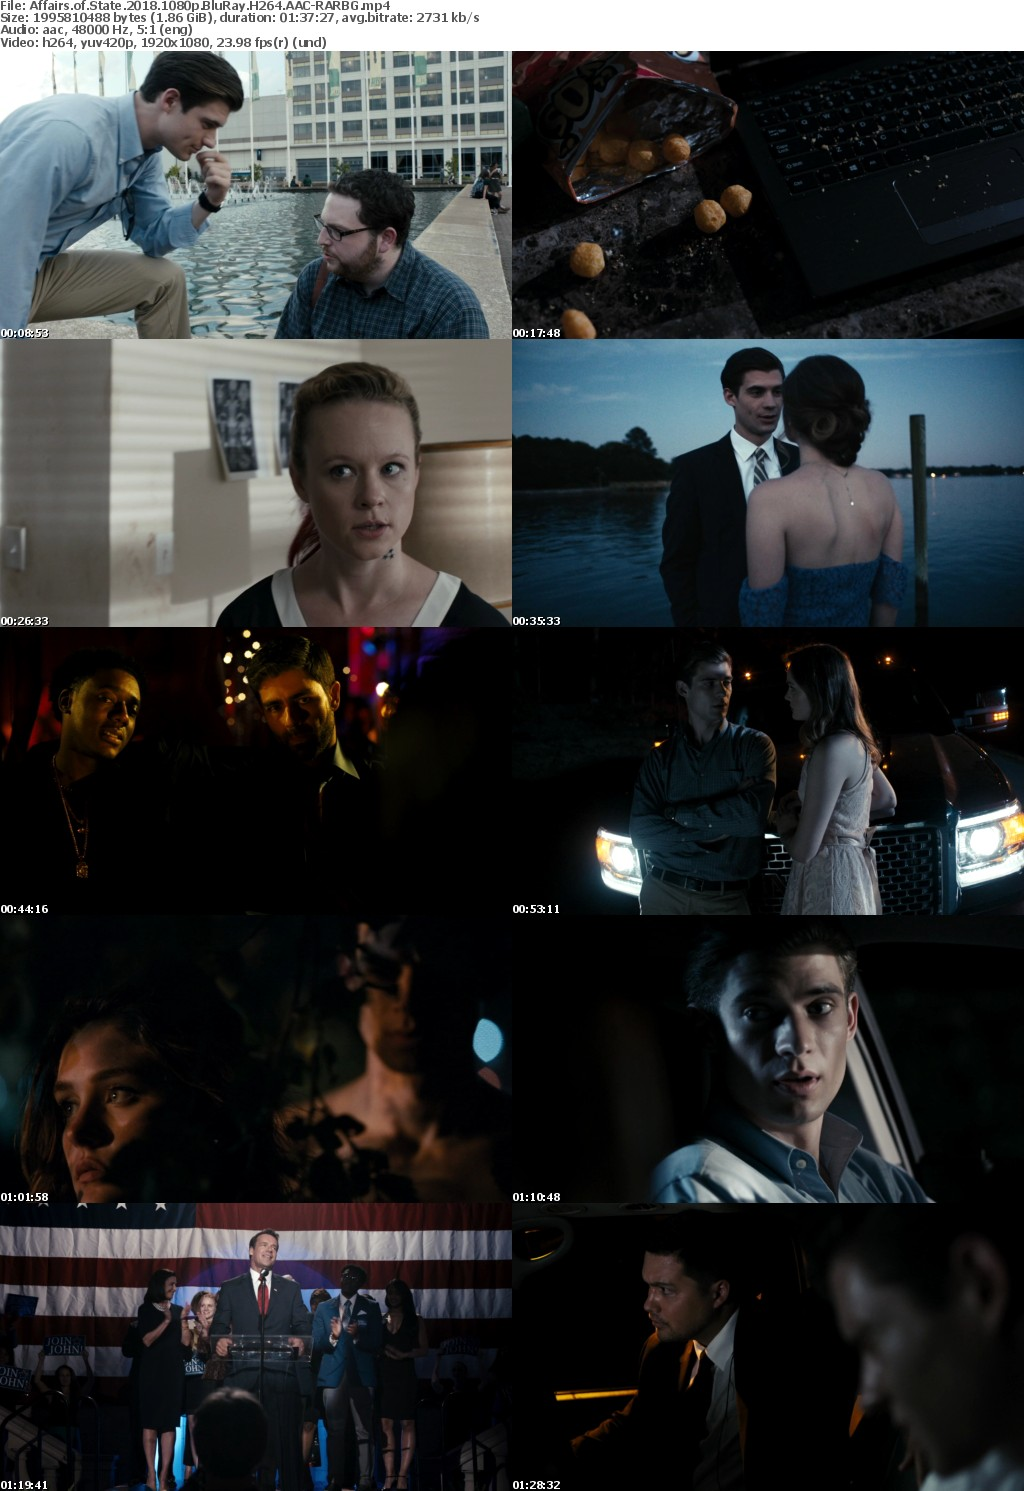 Affairs of State 2018 1080p BluRay H264 AAC-RARBG